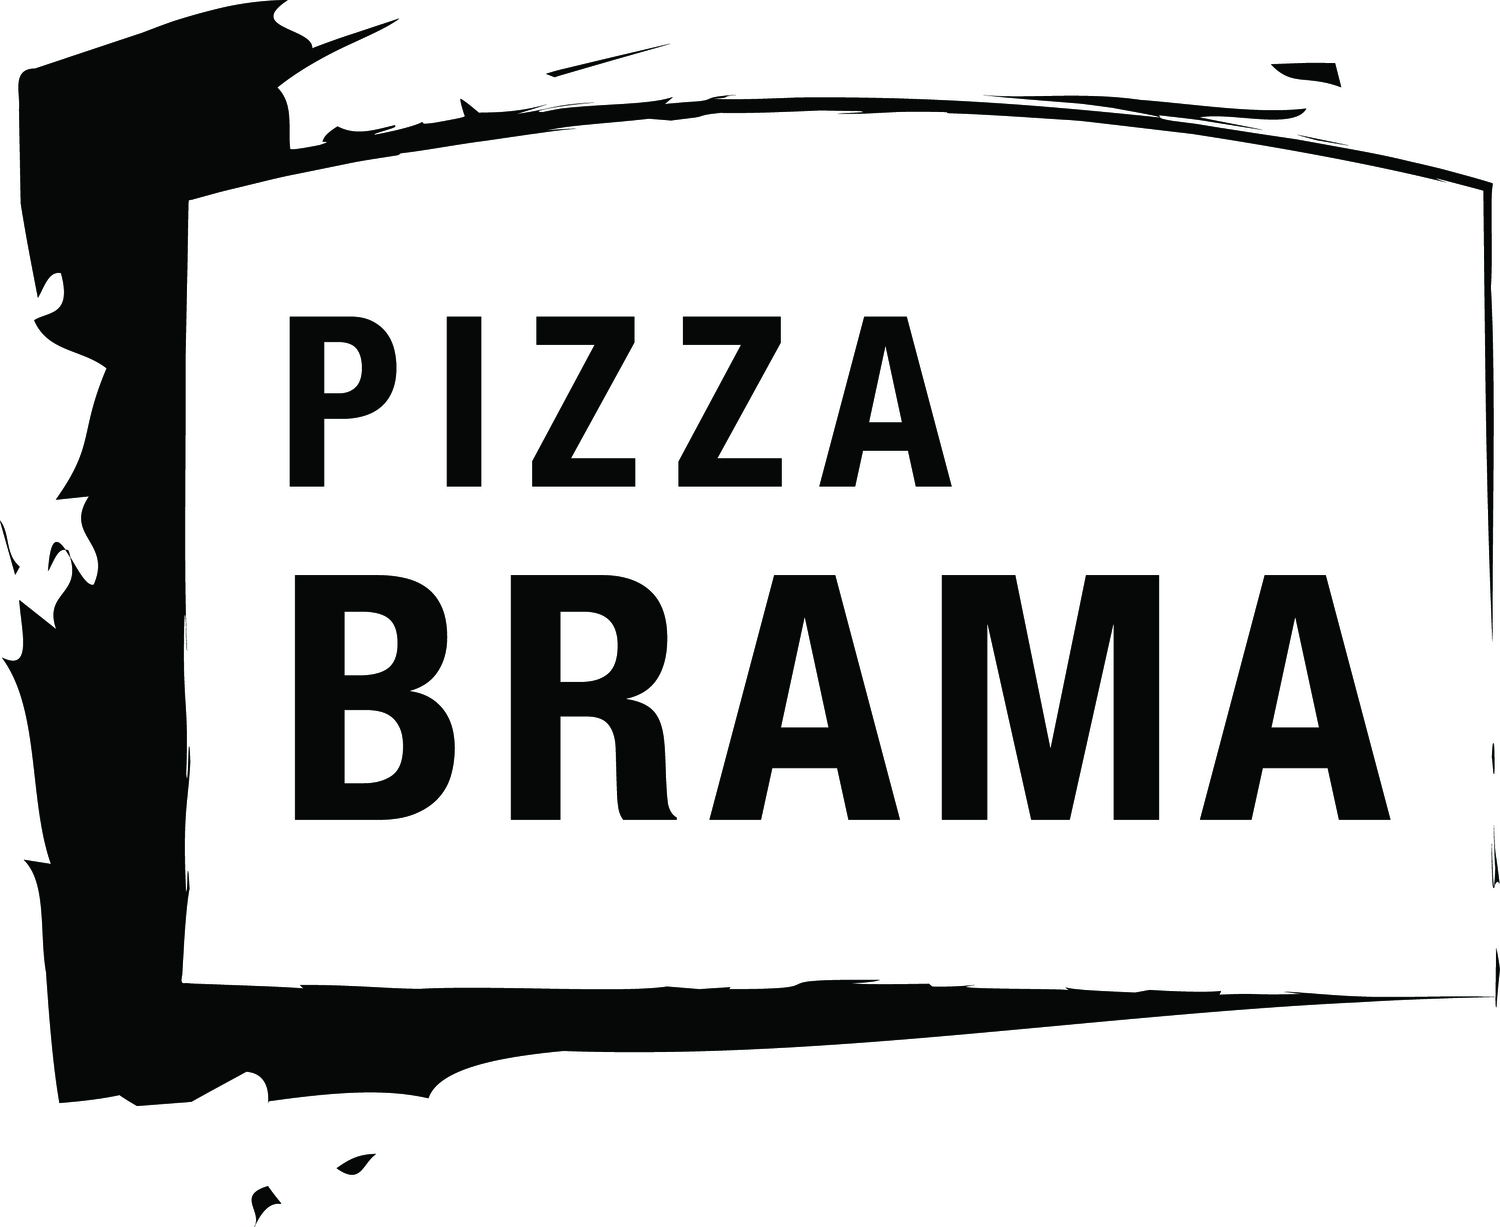 Pizza Brama